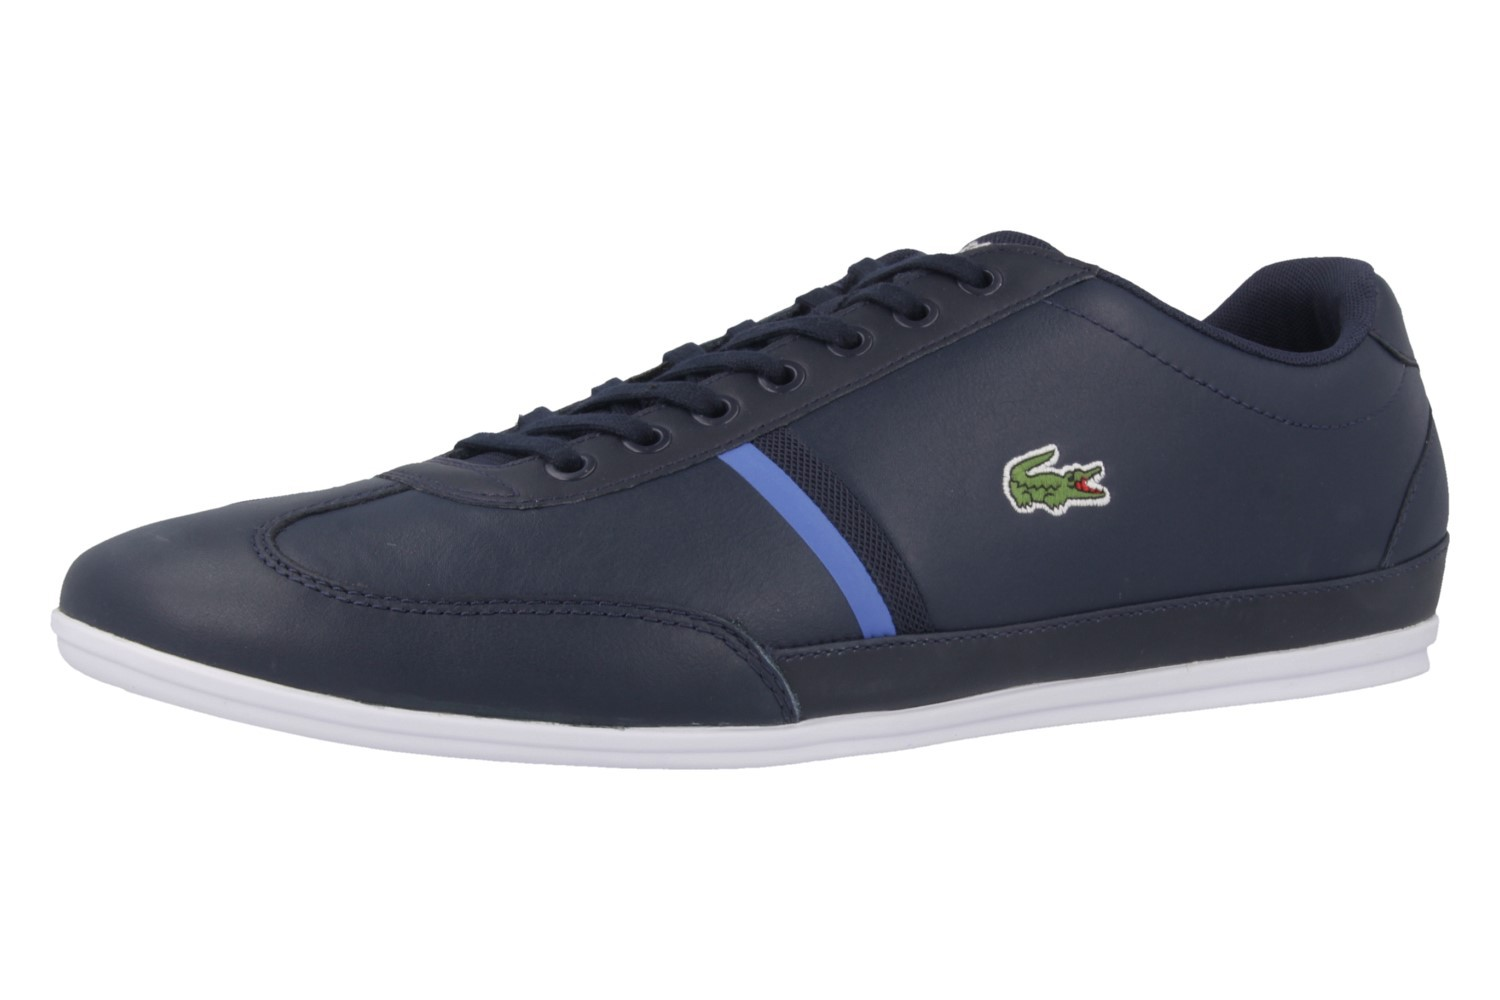 lacoste misano sport 116 herren sneaker blau schuhe in bergr en herrenschuhe in. Black Bedroom Furniture Sets. Home Design Ideas